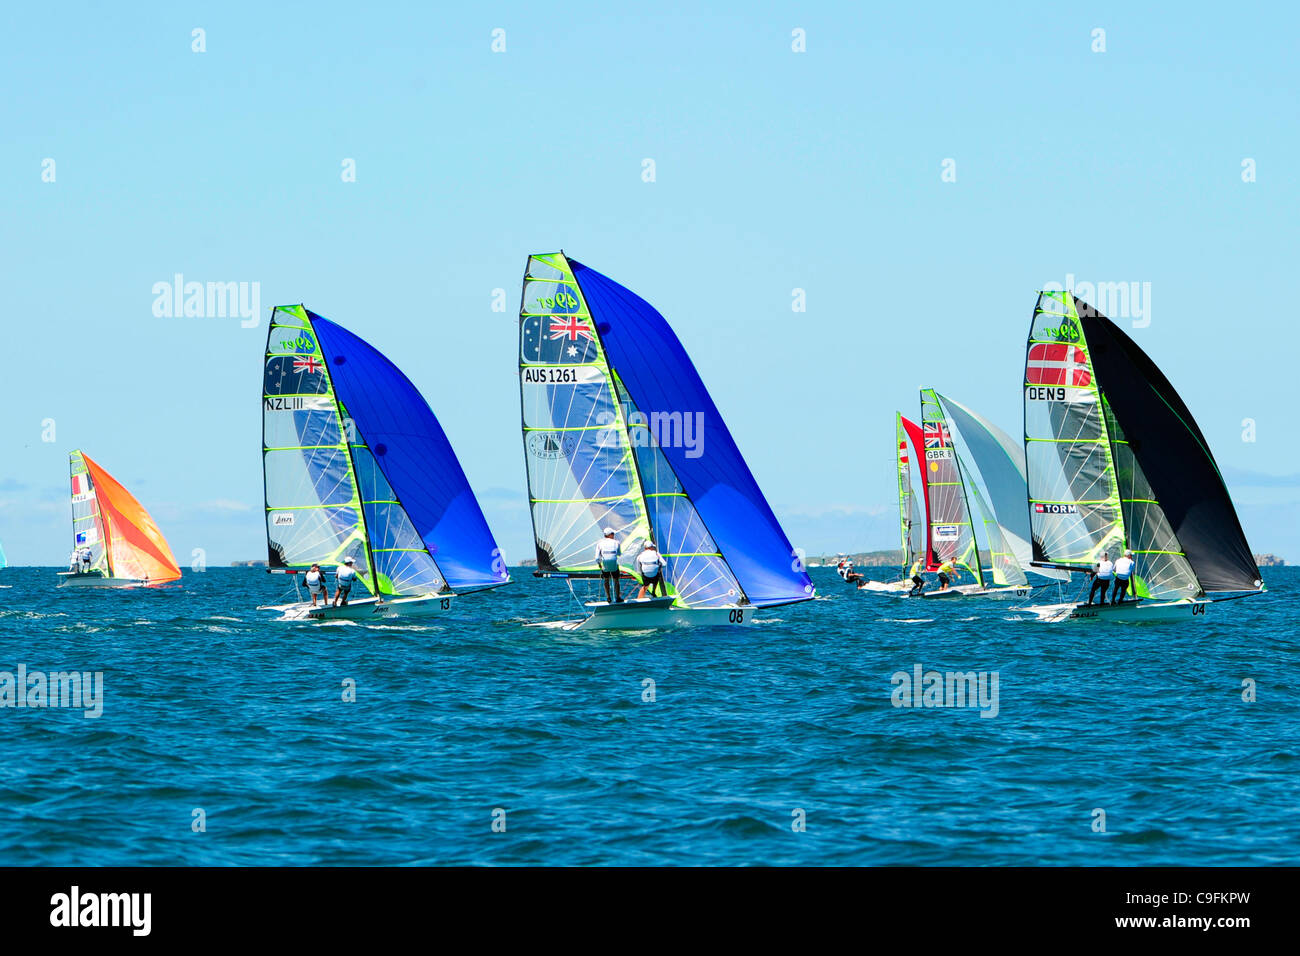 16.12.2011. Perth, Australia. Teams compete in the 49er men's skiff race on the fourteenth day of the ISAF World - Stock Image